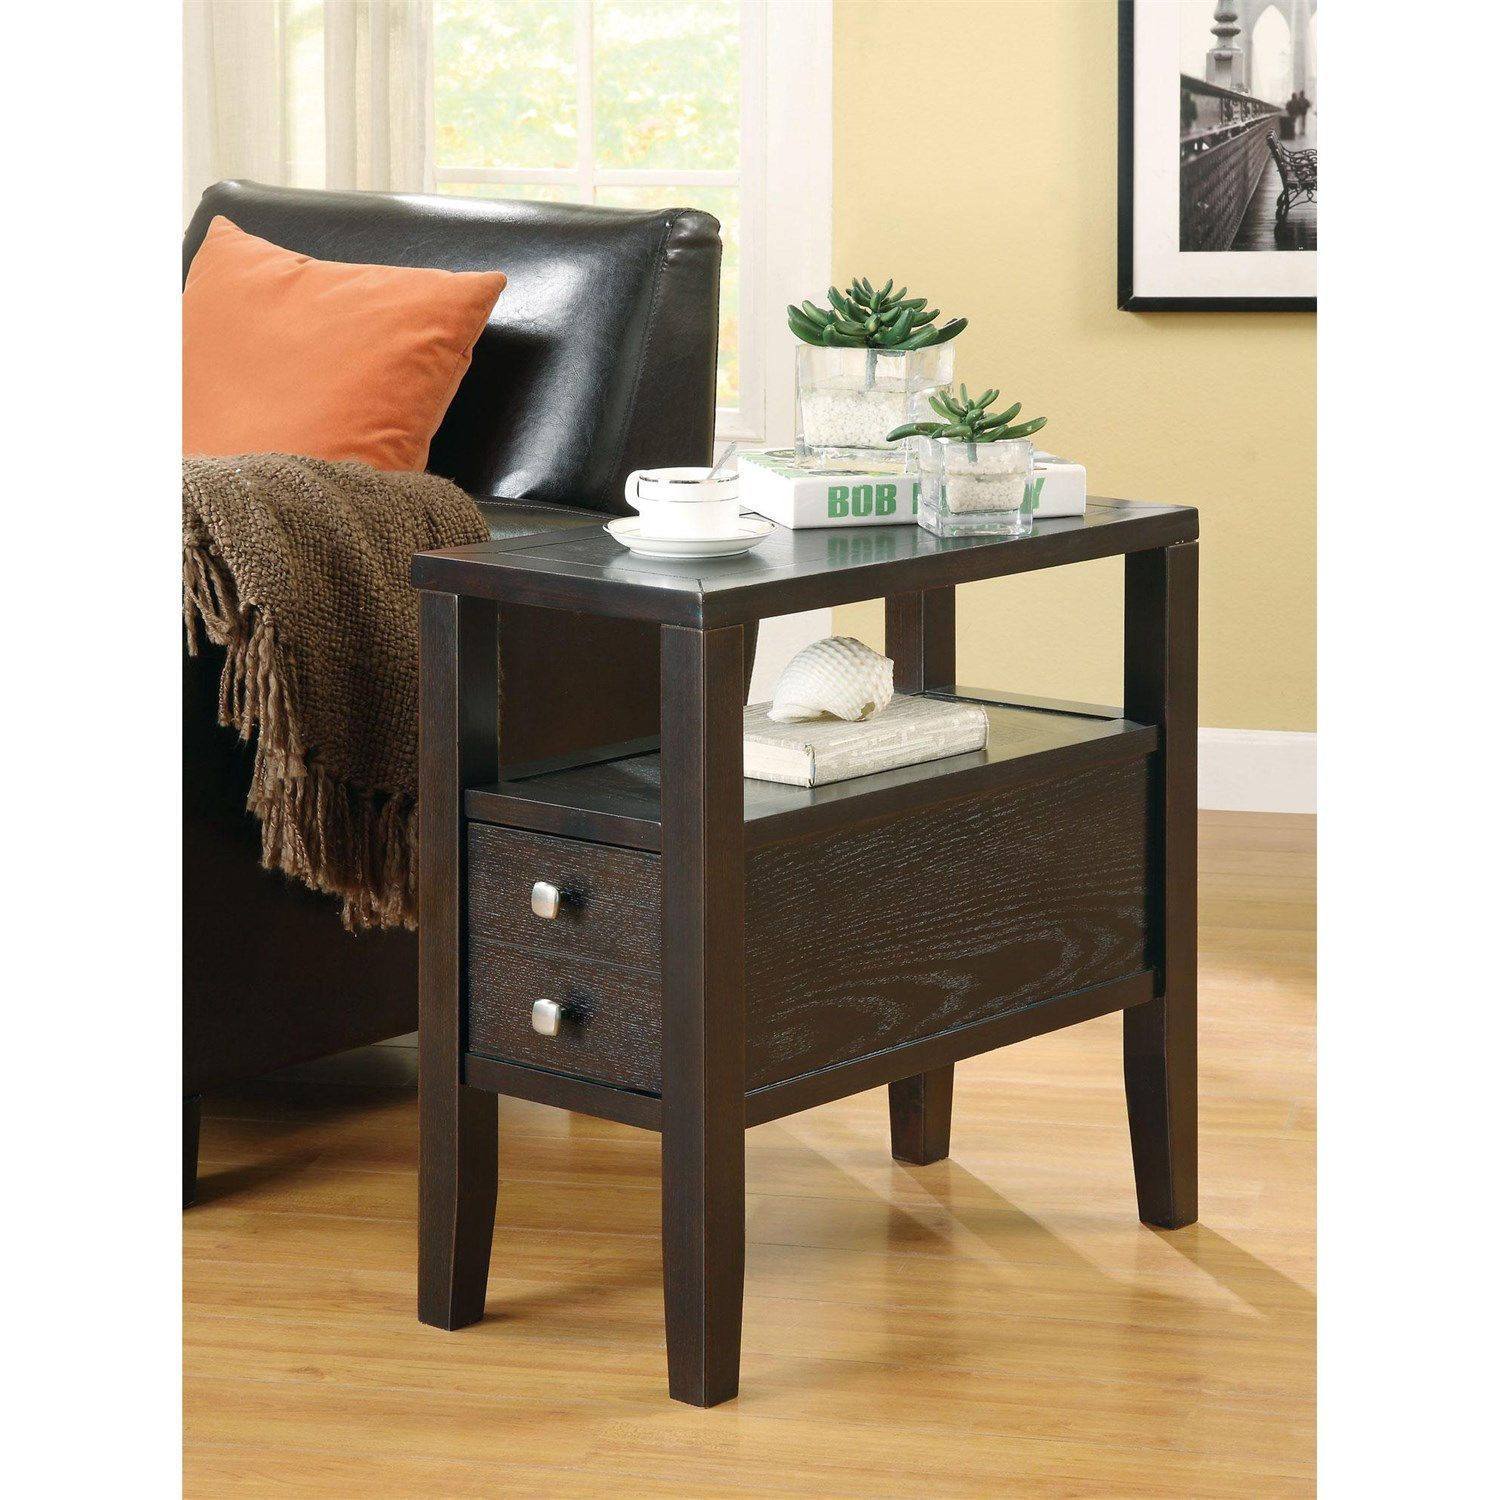 Coaster Furniture 900991 Casual Storage Chairside Table